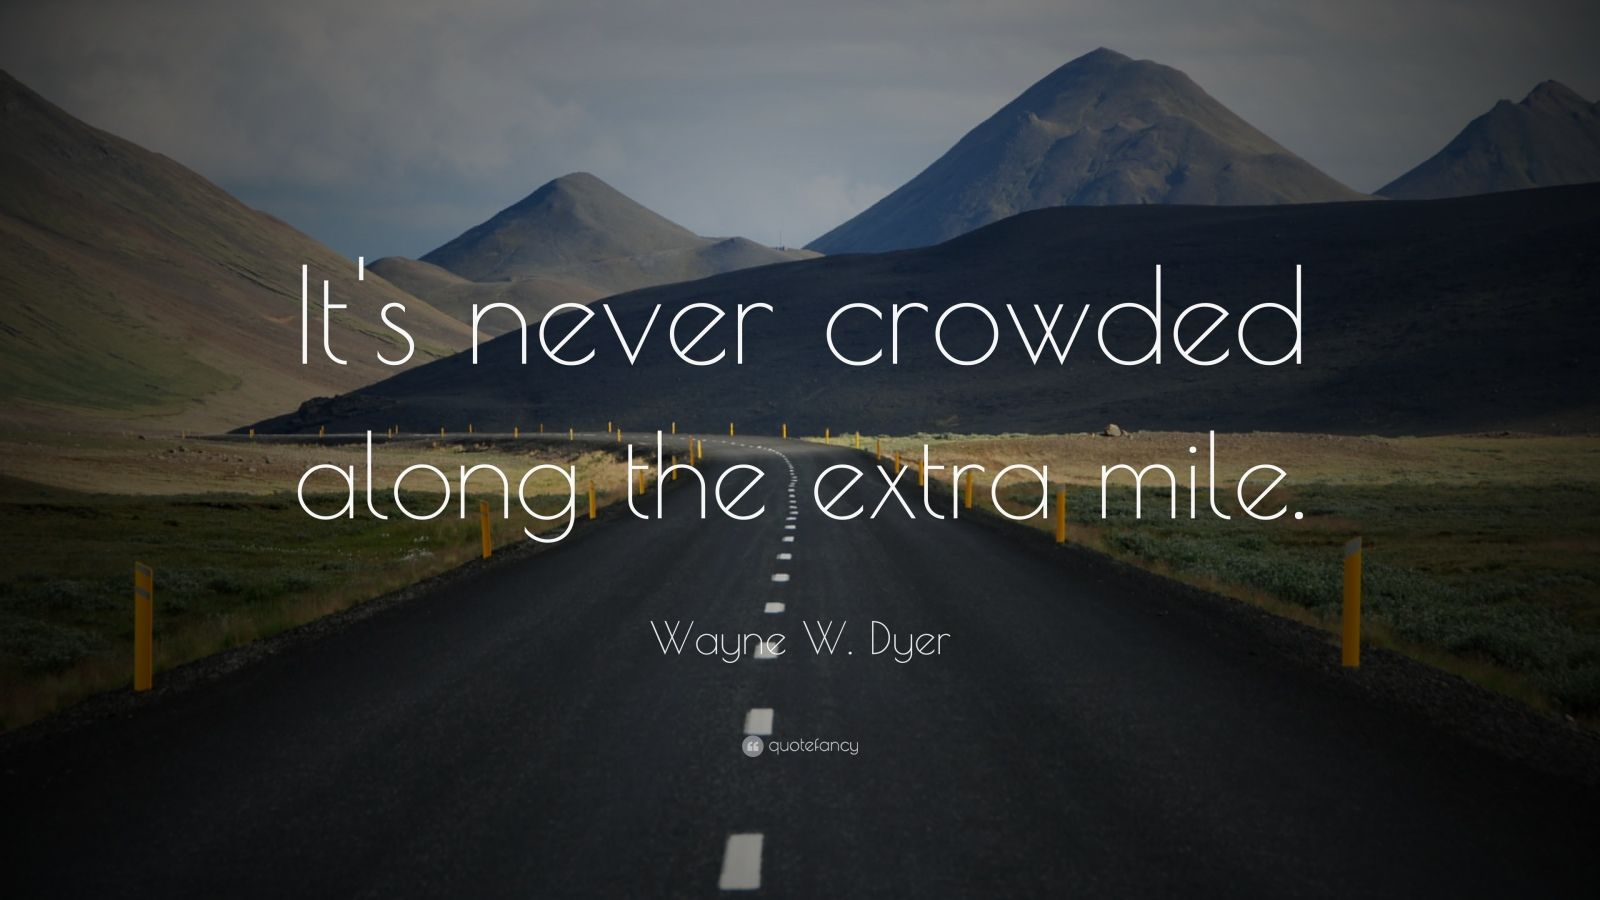 Wayne Dyer Crowded along the Extra Mile